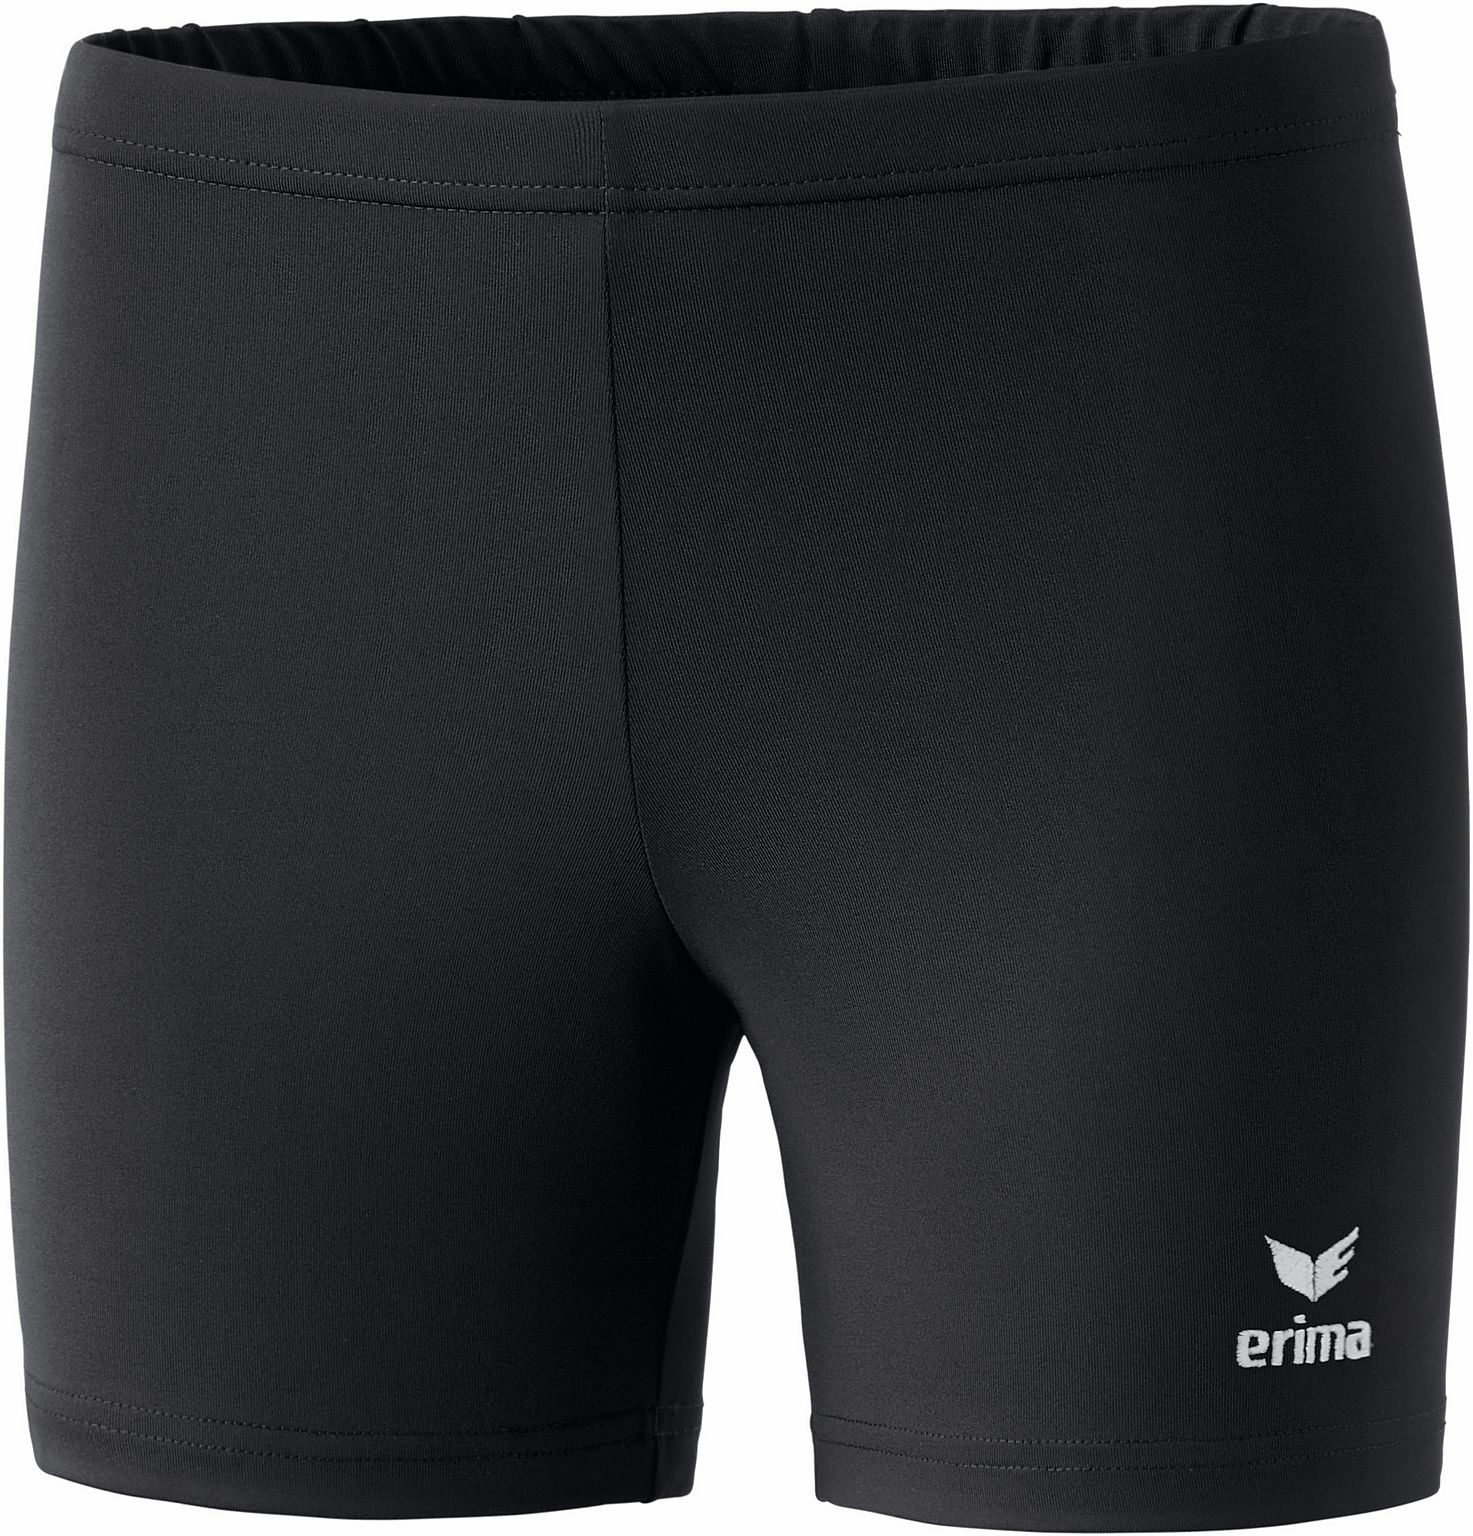 Damen VERONA Performance Short